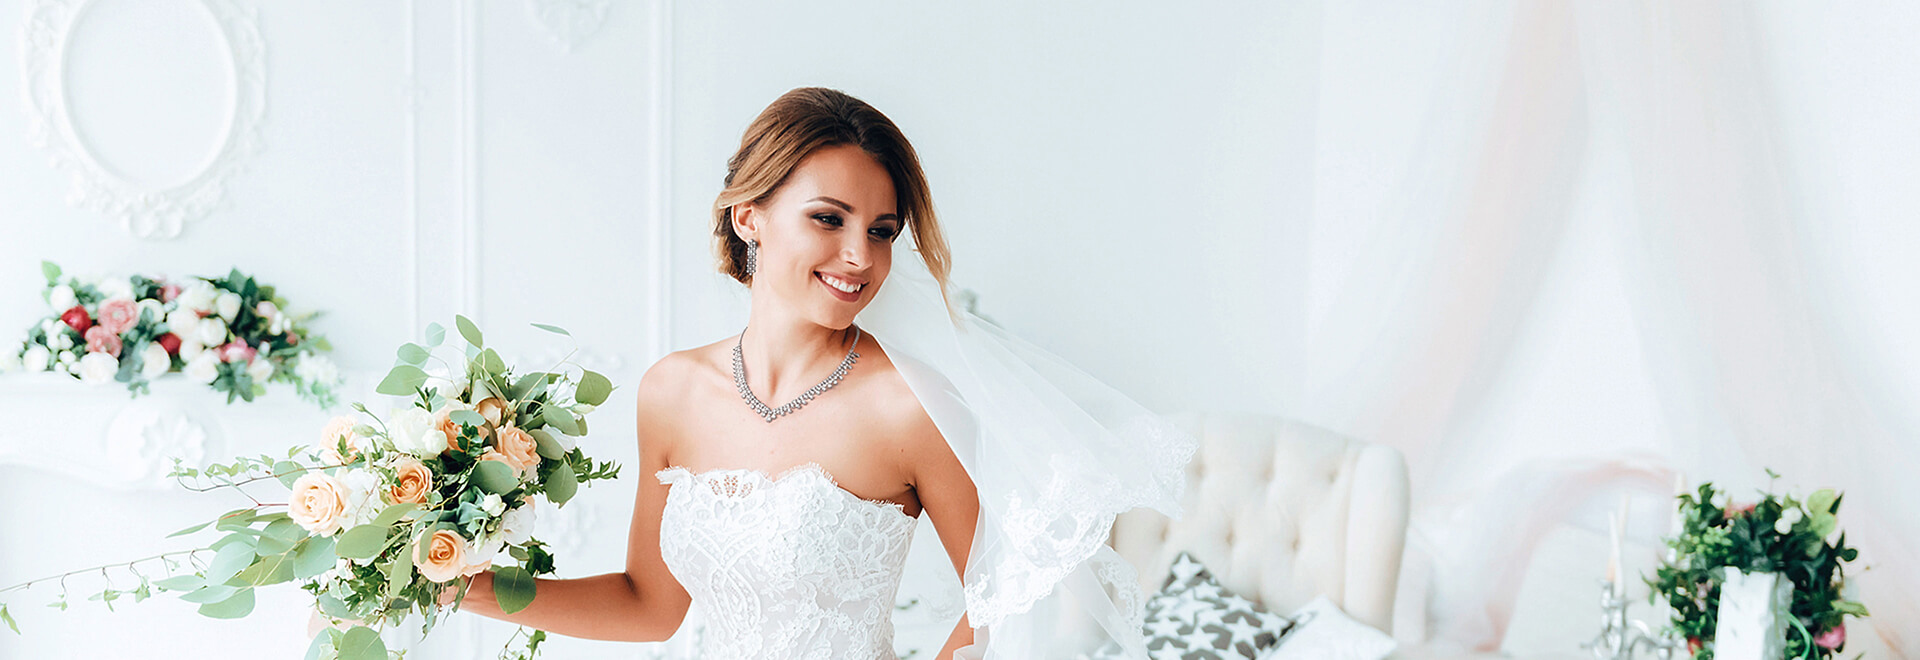 beautiful bride in white dress with bouquet of flower